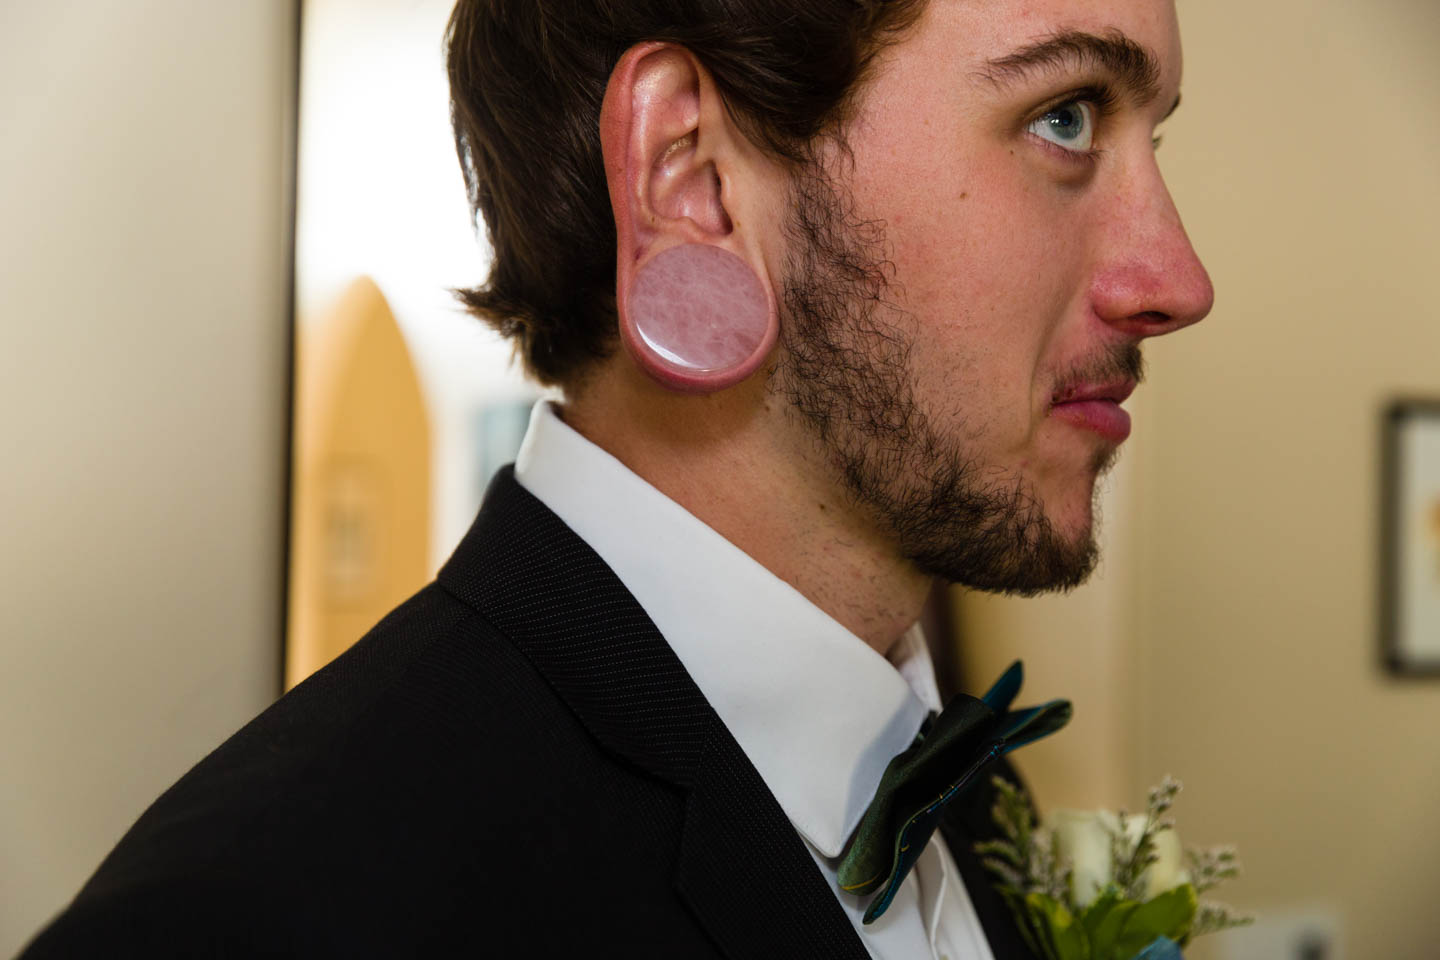 Groom's gauged earring